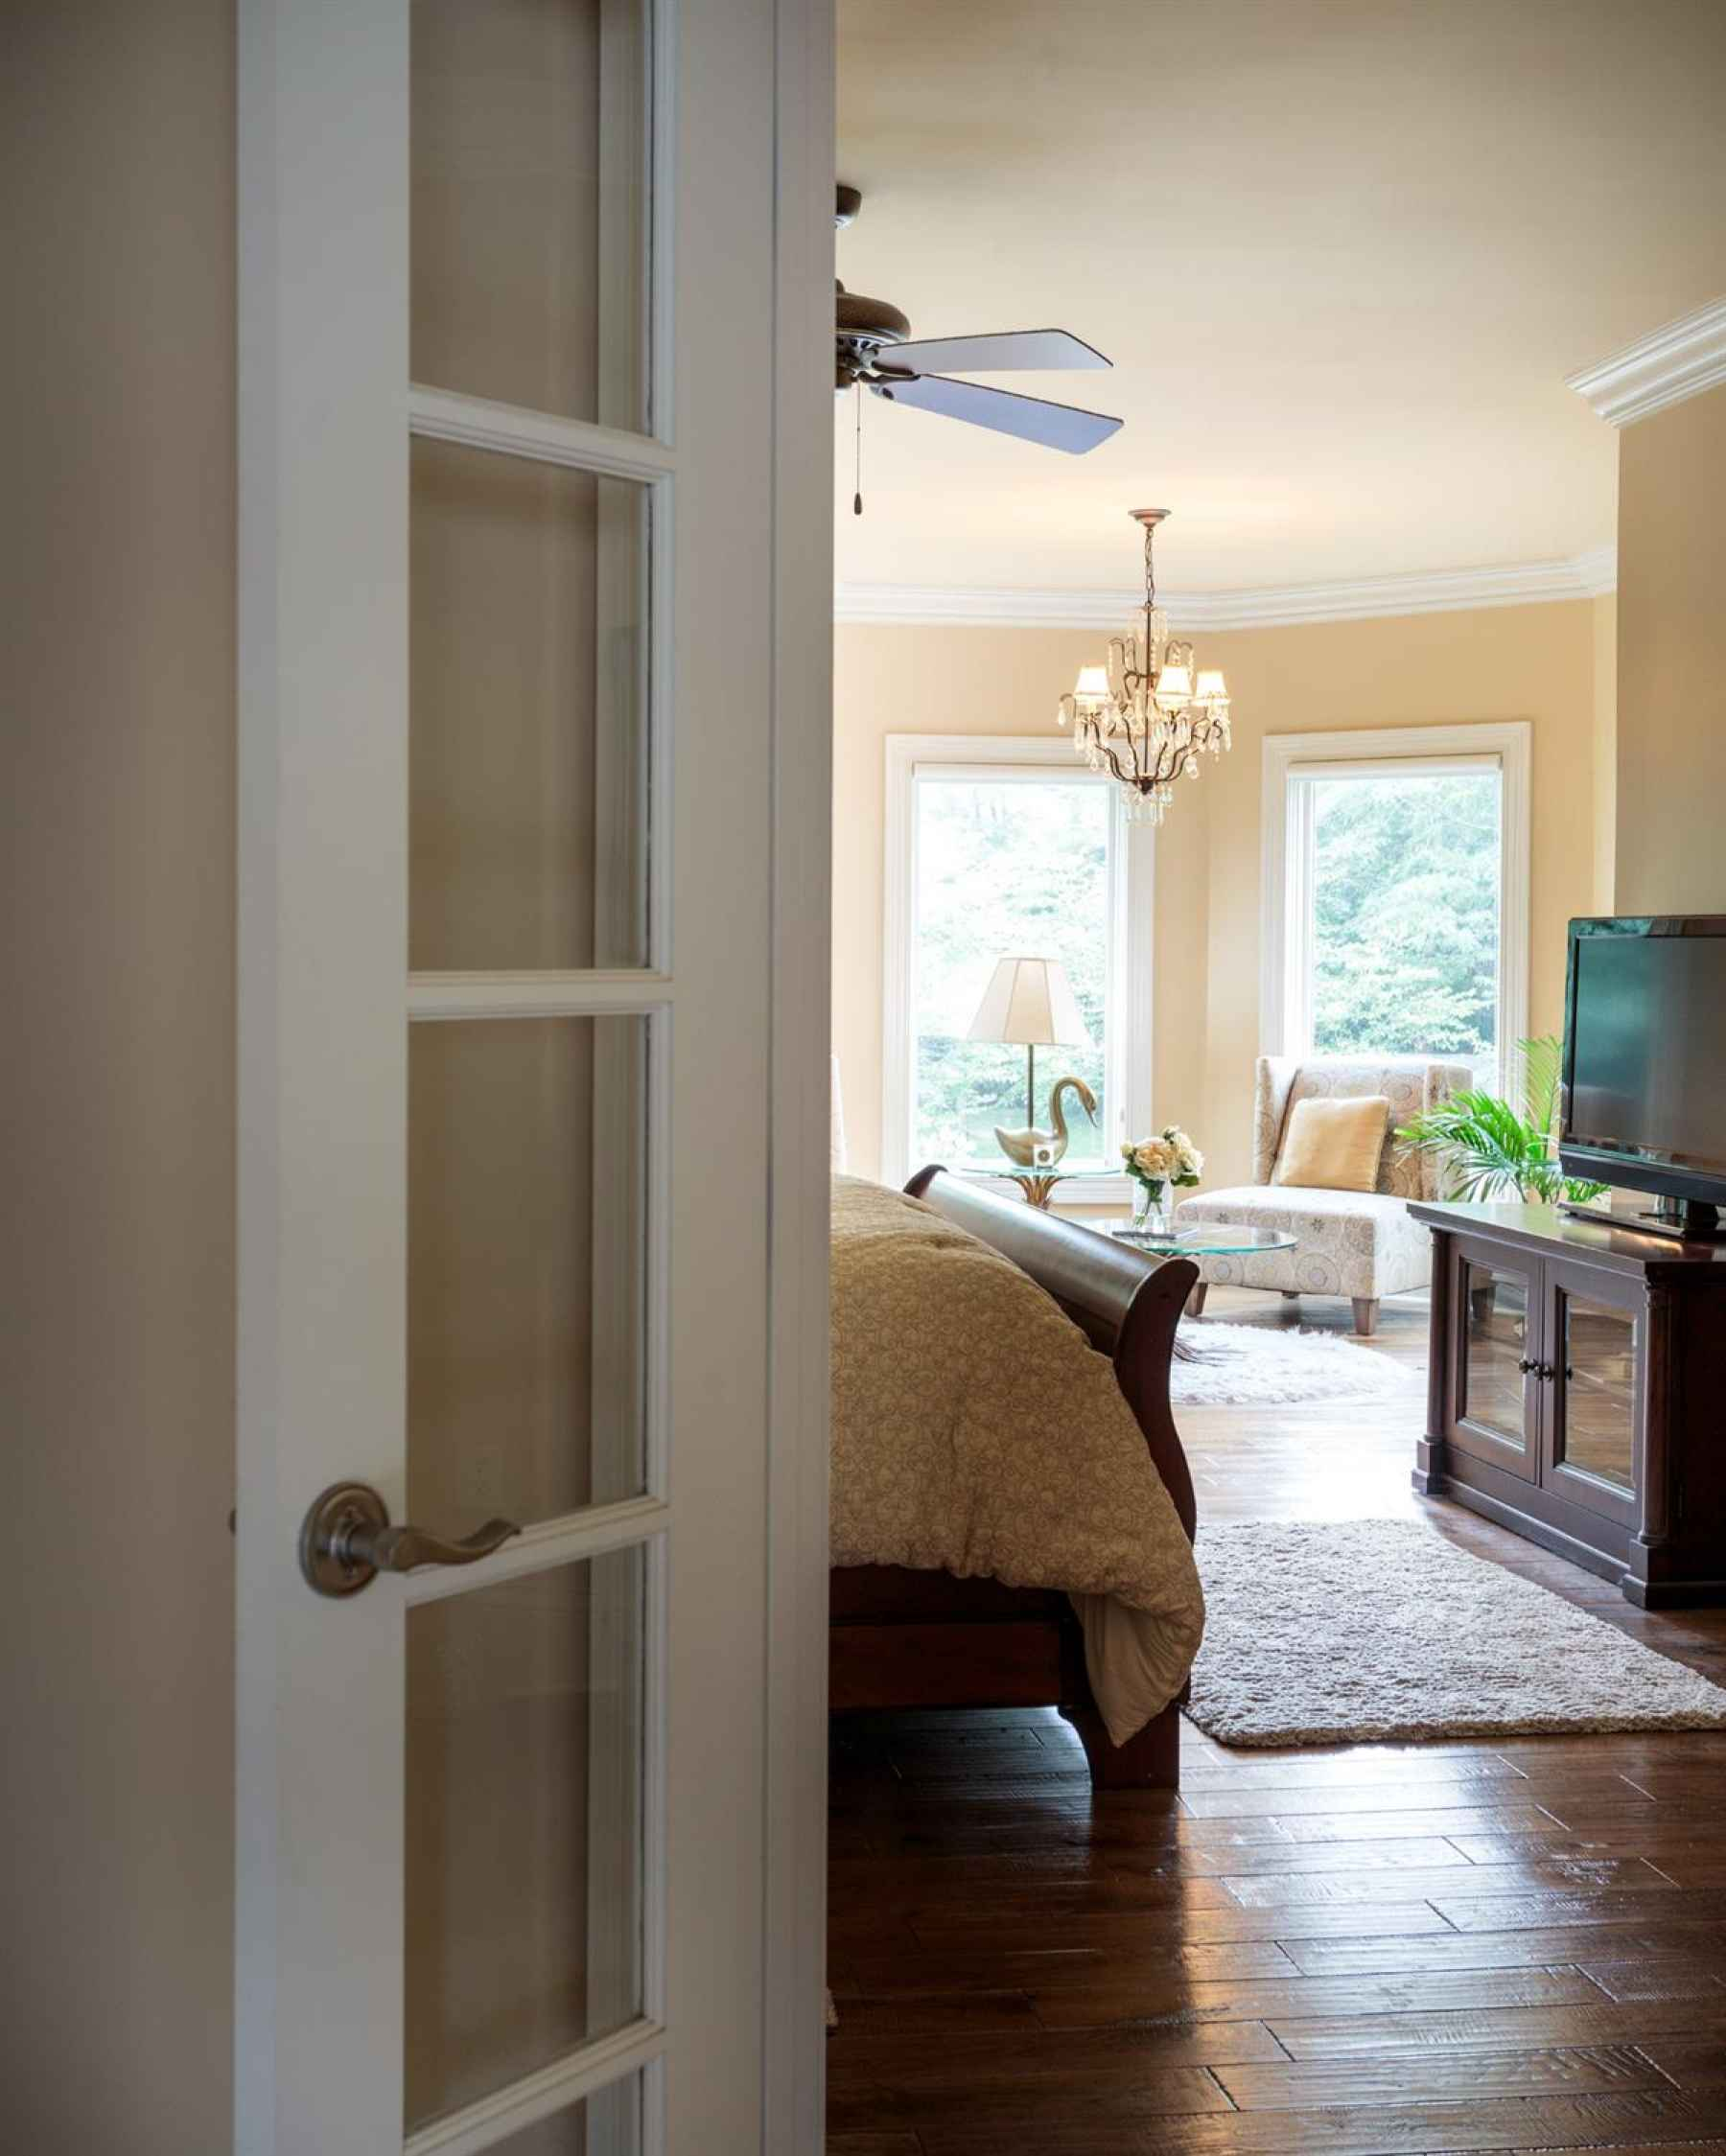 Entrance into the Master Suite.